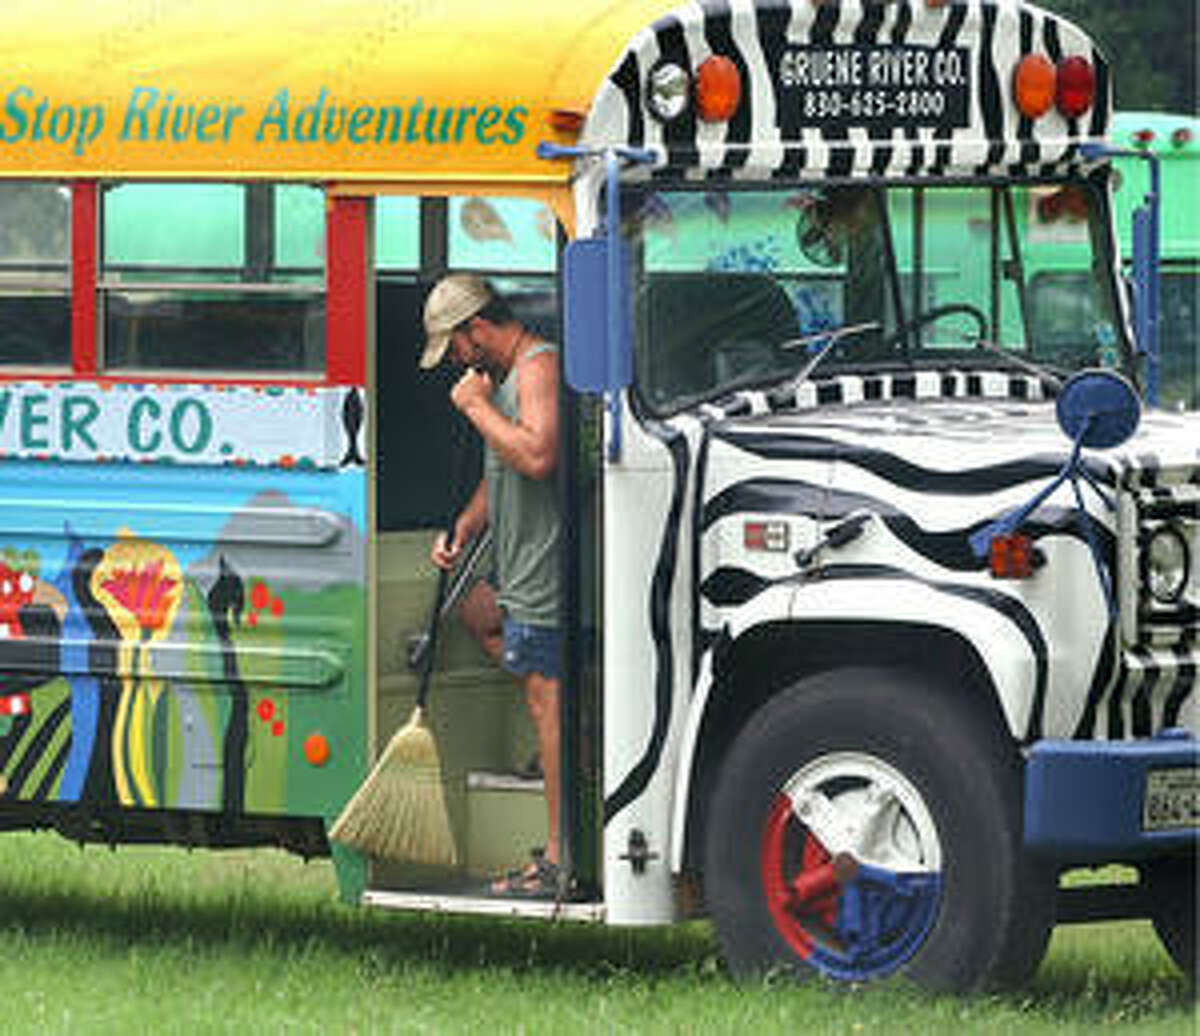 By next year, river outfitters will have to use buses or other vehicles specifically made to transport people as shuttles, according to new rules in New Braunfels.